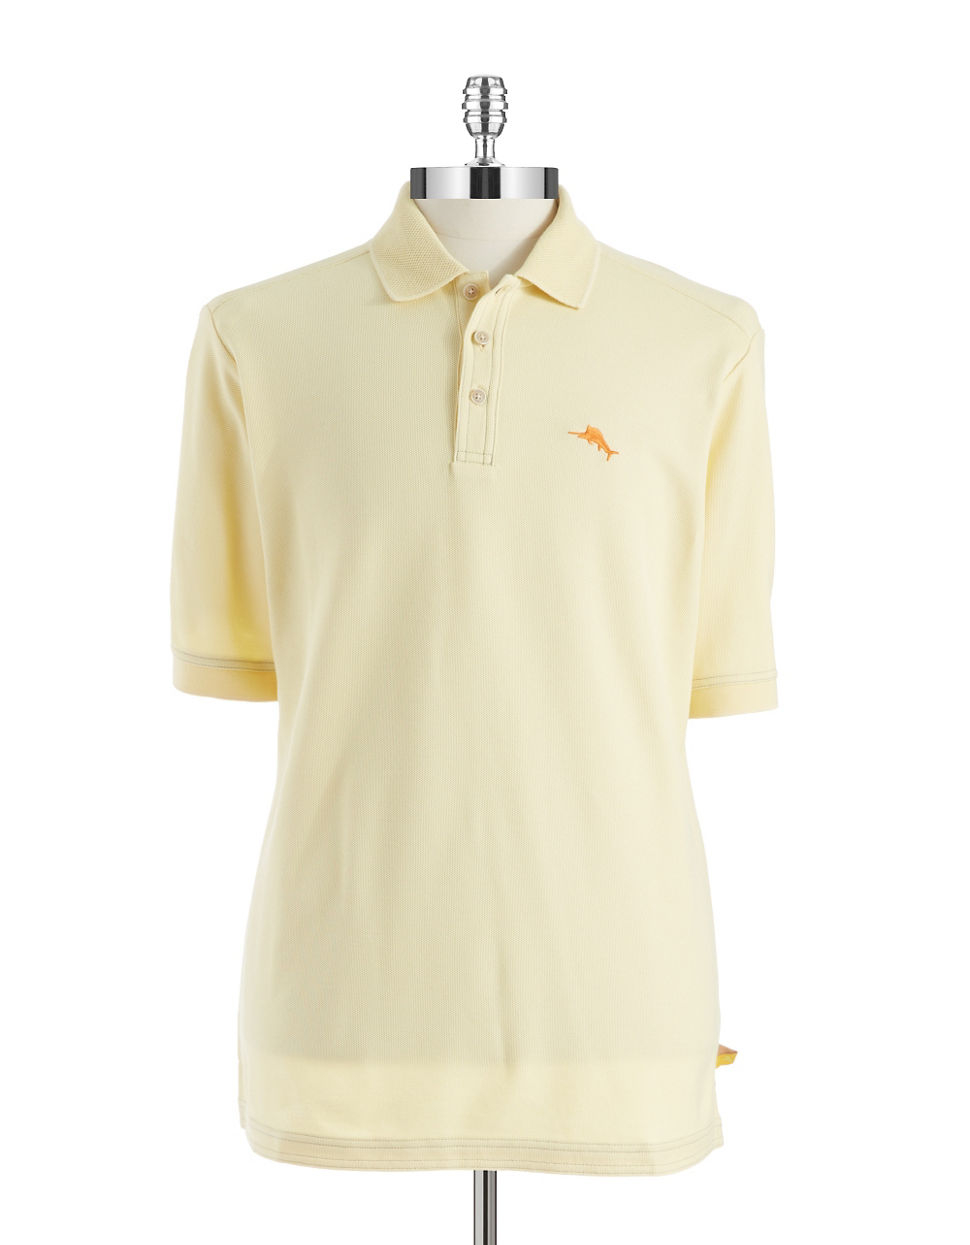 Tommy bahama emfielder polo shirt in beige for men sun for Tommy bahama polo shirts on sale